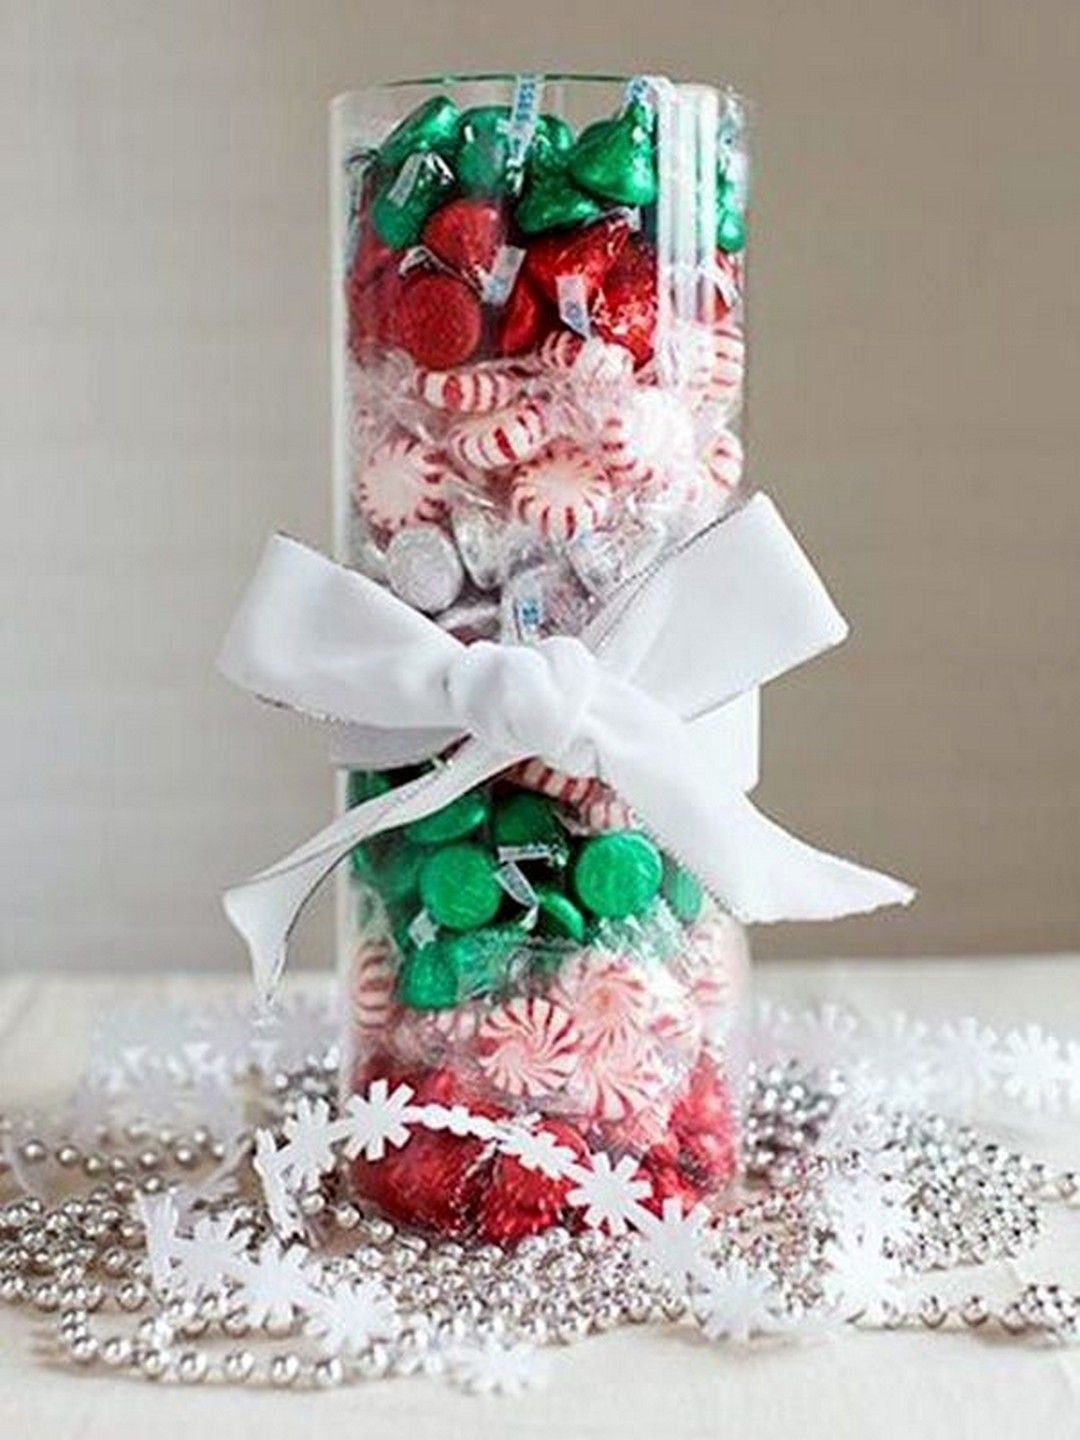 30+ BEST Homemade Christmas Decorations and Craft Ideas! #homemadechristmasgifts